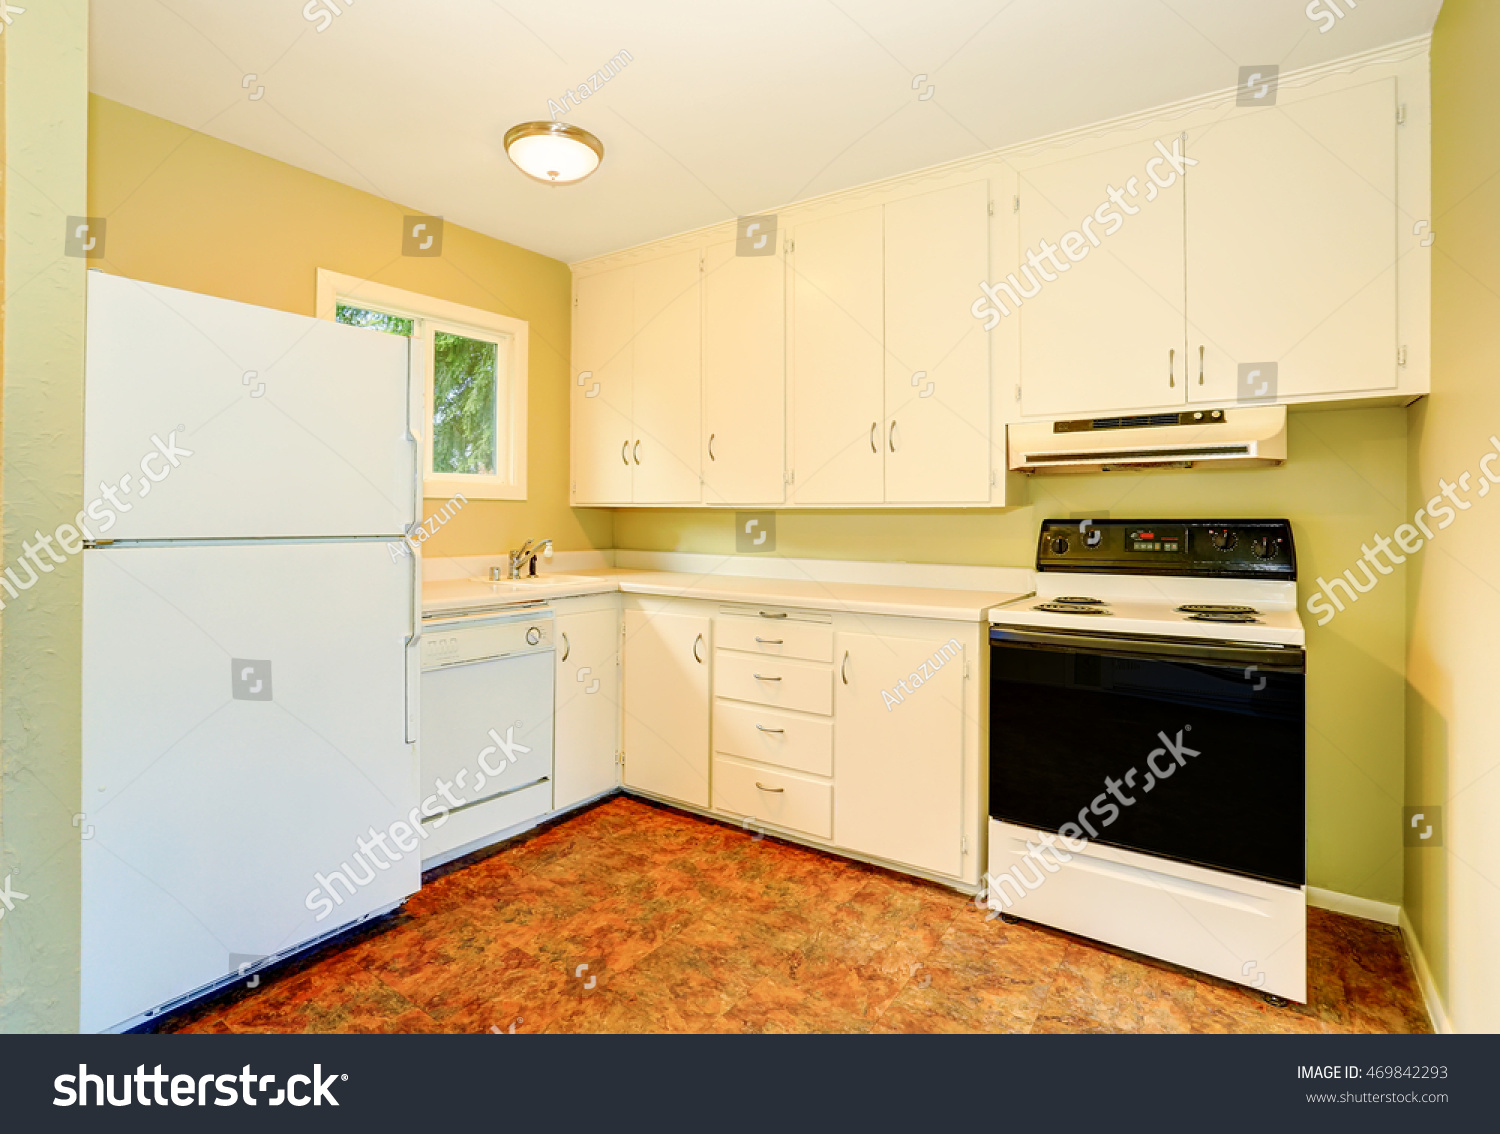 Old Style Simple Kitchen Interior With Cabinets And White Appliances.  Northwest, USA